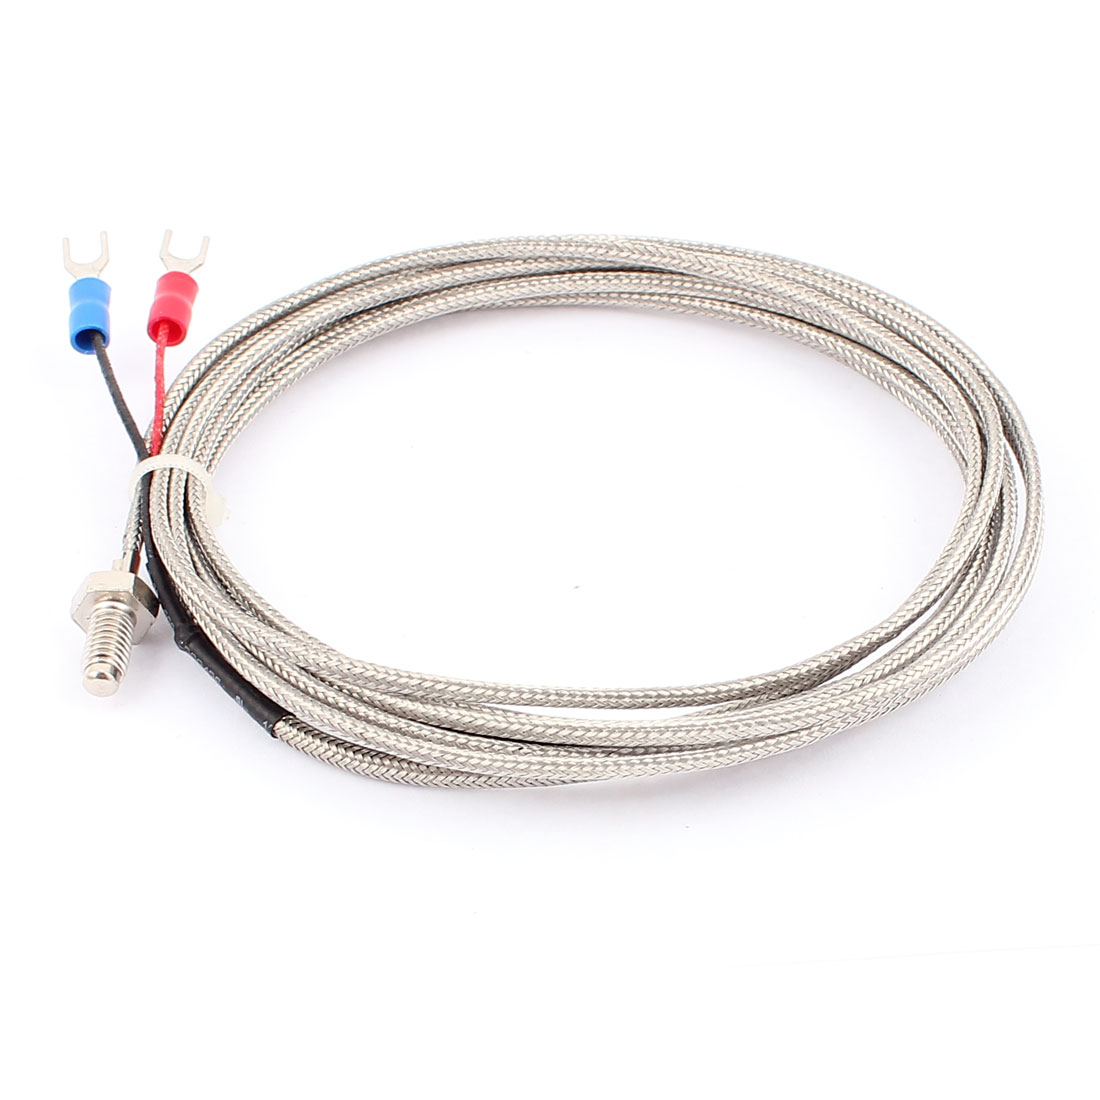 K Type Temperature Control Thermocouple Sensor Probe Cable 0 to 400C 3Meter 10Ft Long 2pcs